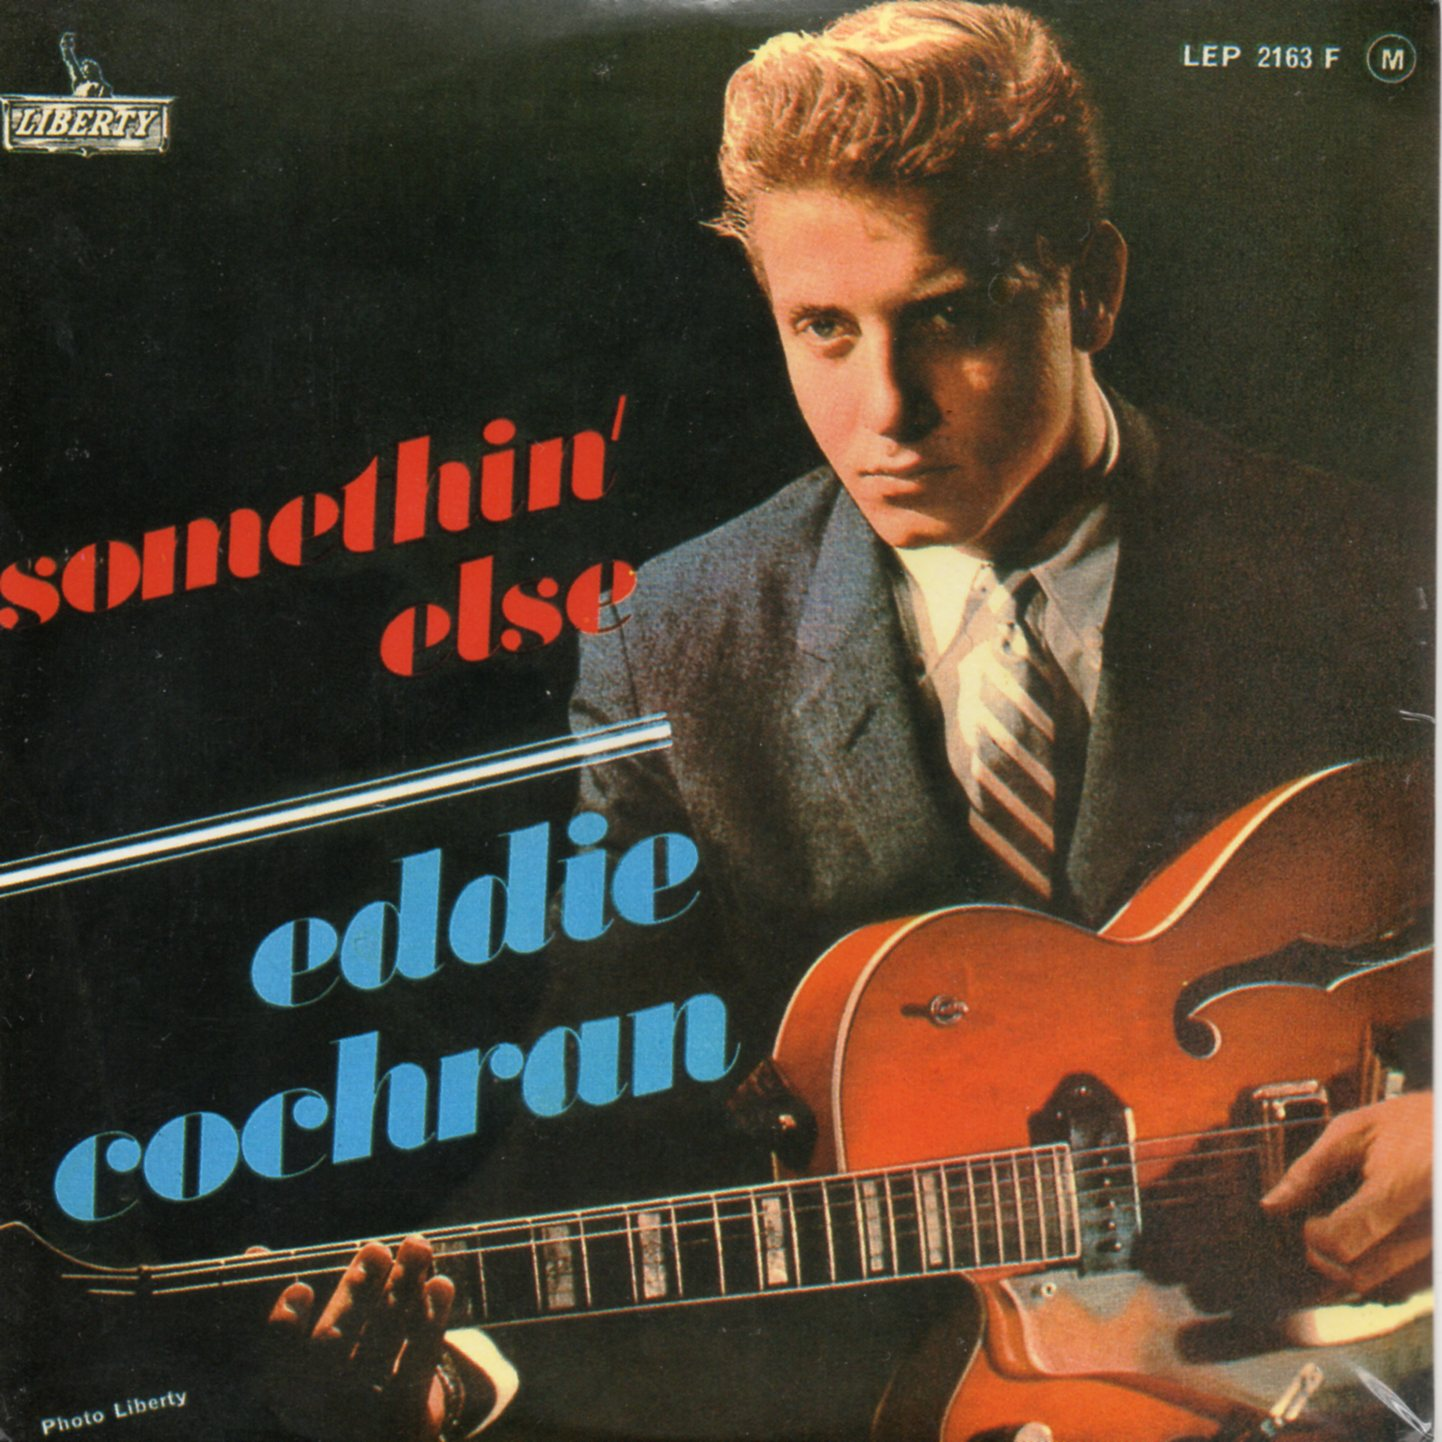 Eddie COCHRAN - Somethin' Else 4-track Card Sleeve Reissue Original 60s Ep ! Rare !!